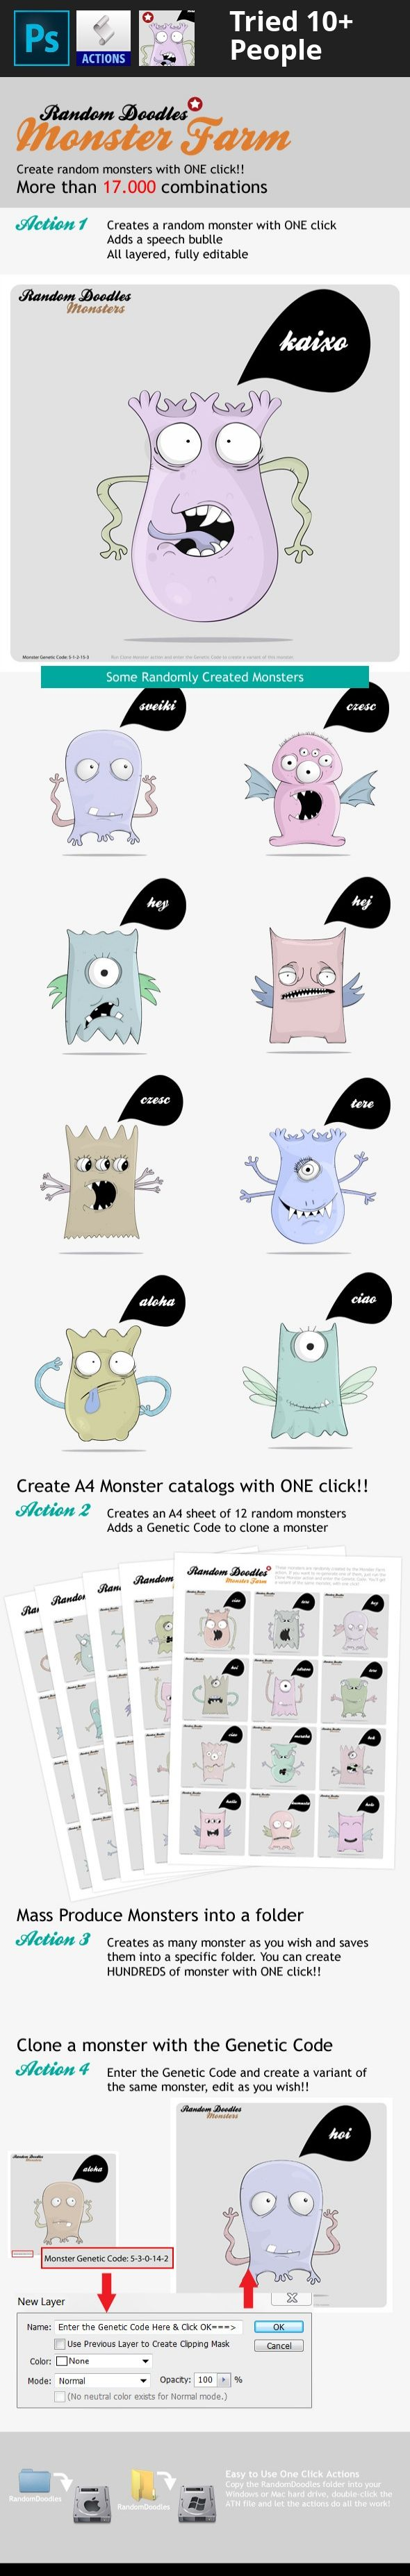 action, alien, creature, cute, doodle, doodles, illustration, monster, monsters, random, script There are 4 actions in this pack, using them you can; Generate cute, happy, silly, angry random monsters with only one click. MonsterFarm actions randomly pick body, arms, mouth and eyes from a total of 52 parts and creates a monster with only one click.   	You can mass generate any number of monsters into a folder in JPEG format with only one click.   	You can create A4 monster sheets with onle…